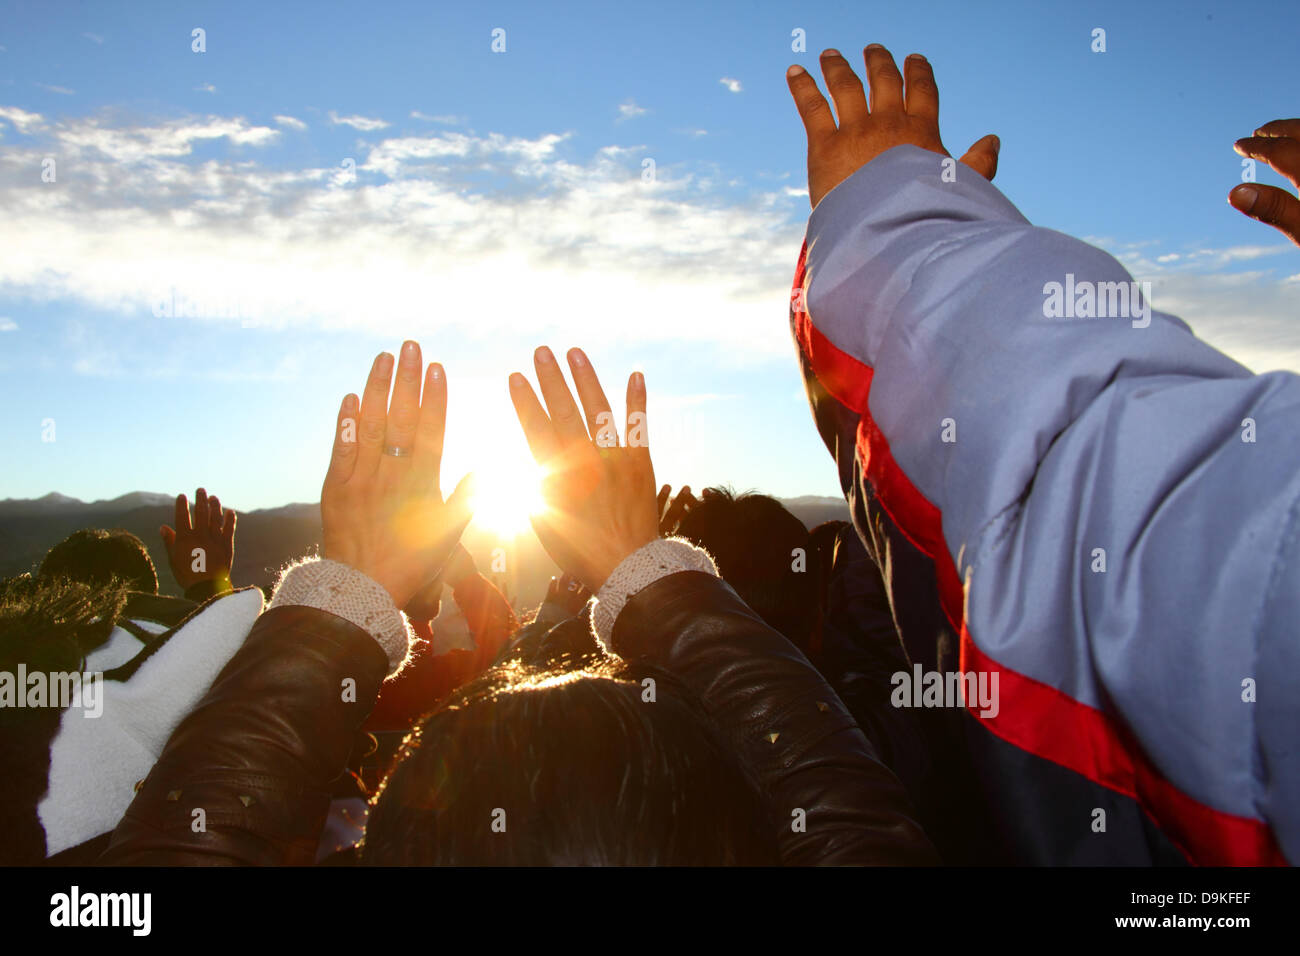 LA PAZ, BOLIVIA, 21st June. Bolivians hold up their hands to receive the warmth and energy of the rising sun at Stock Photo